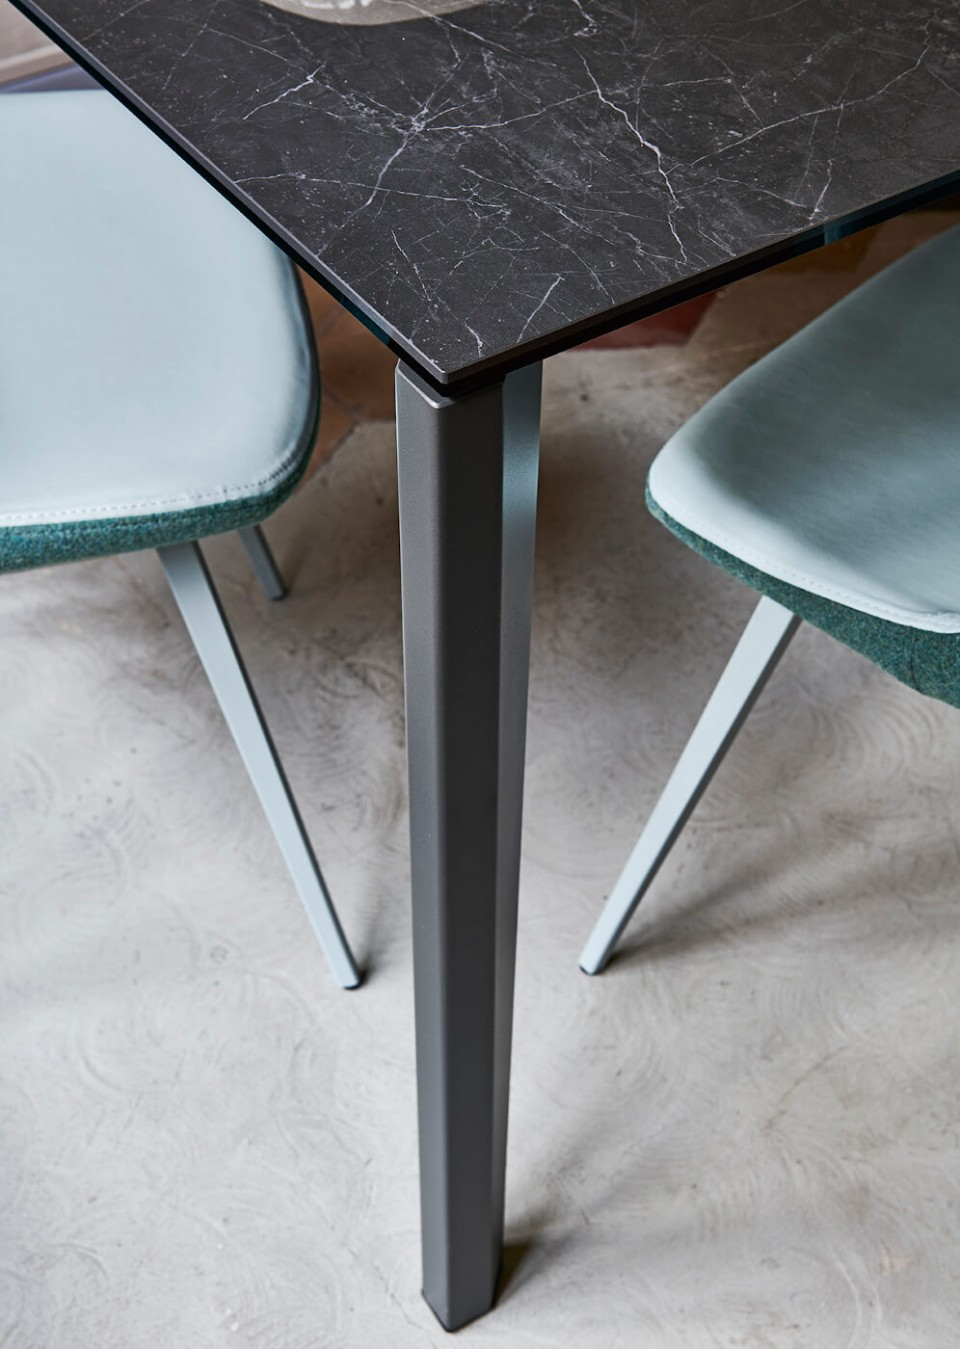 Detail of Diamante table leg and crystalceamic top with black marble effect